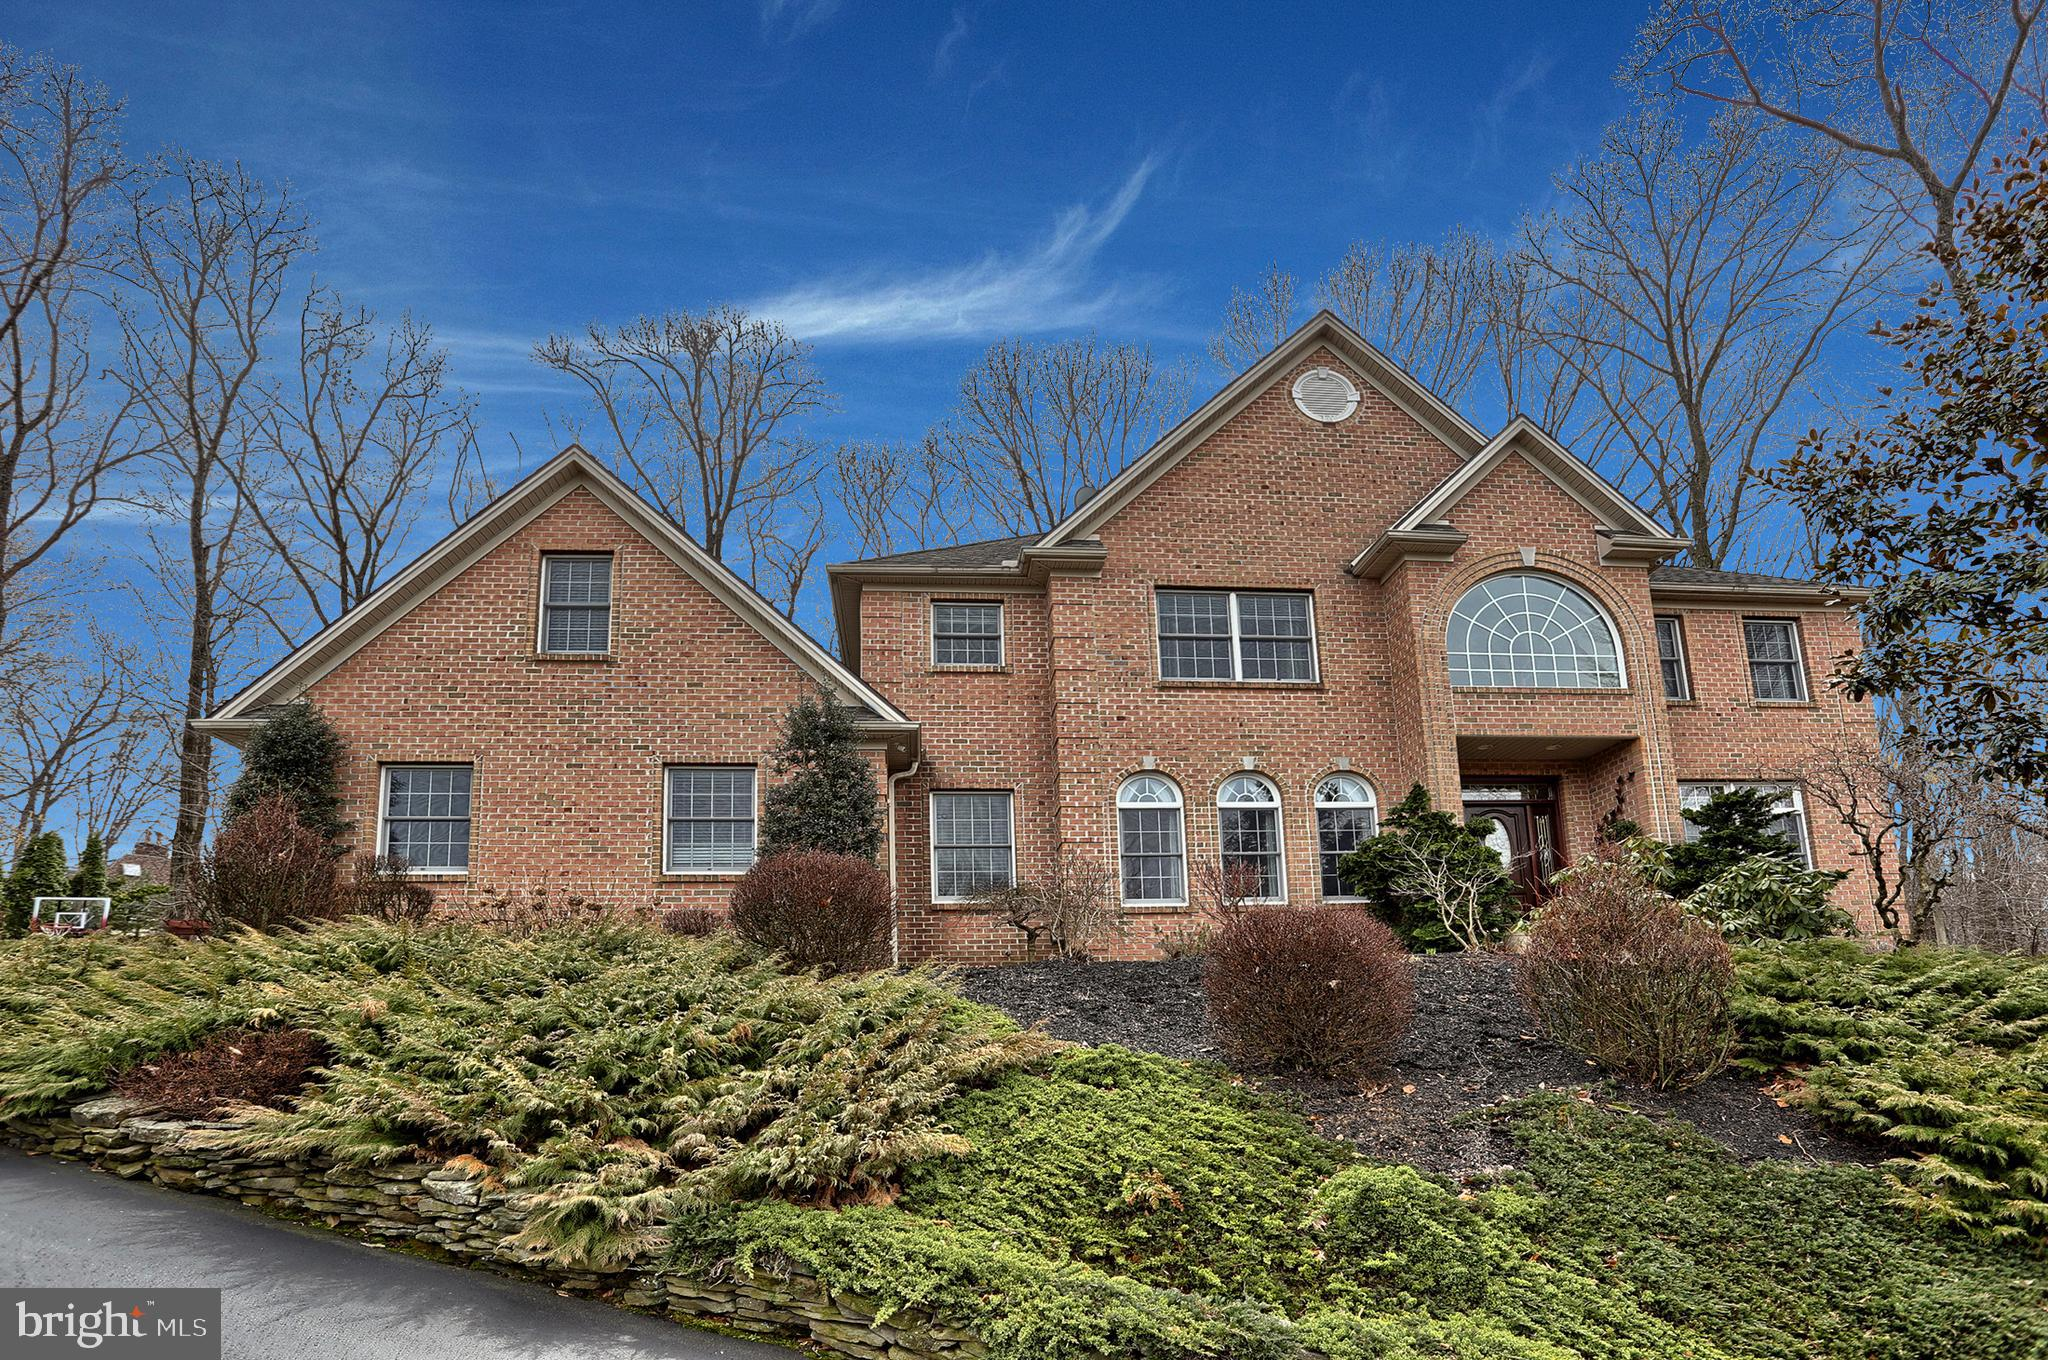 650 MEADOW ROSE COURT, HUMMELSTOWN, PA 17036